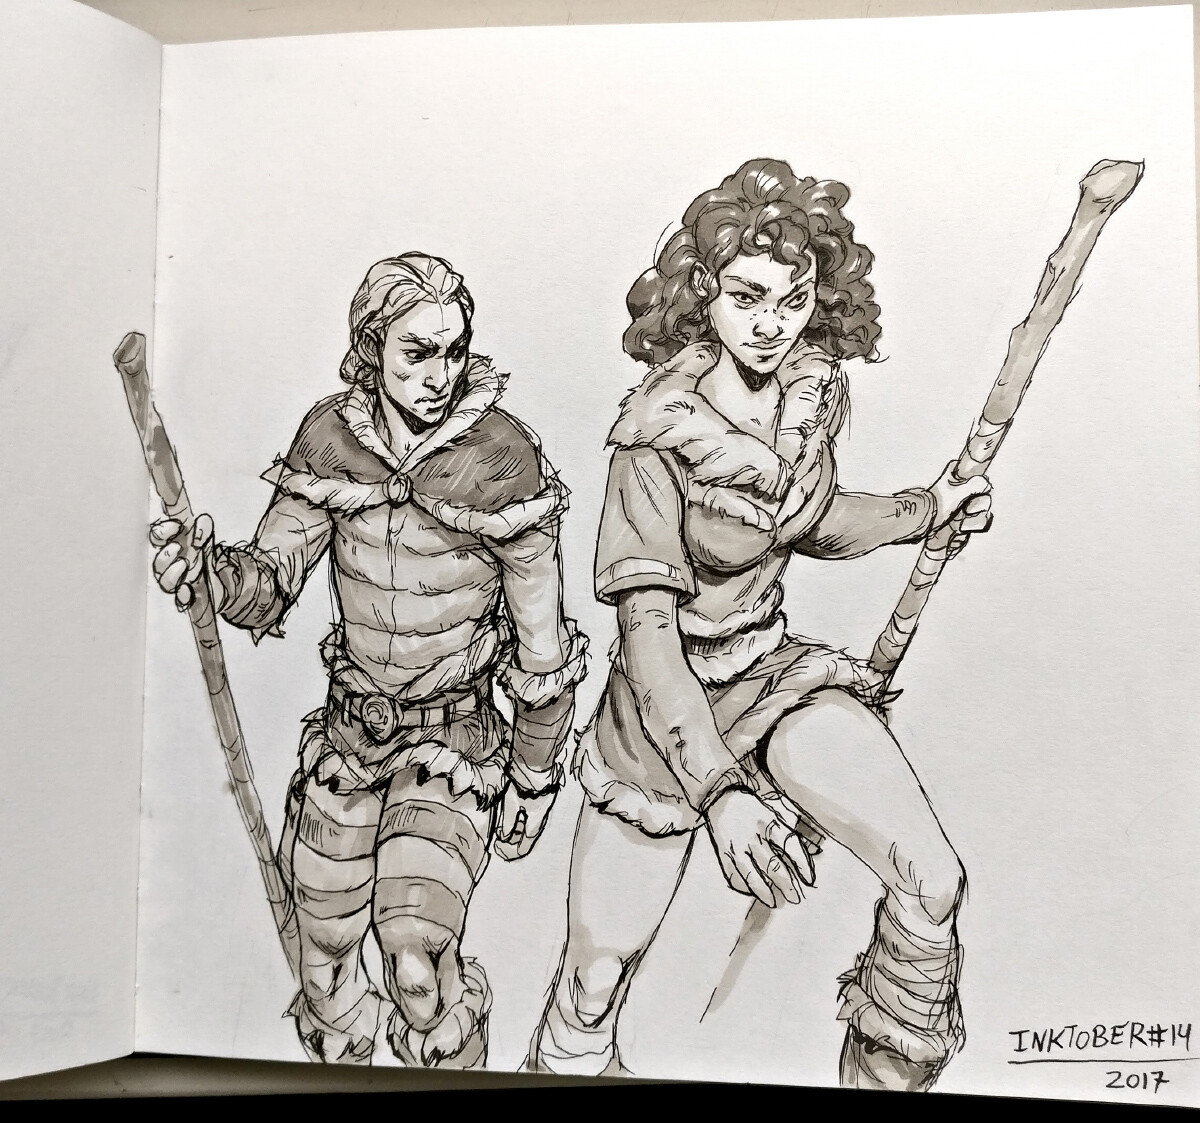 Day 14: Fierce